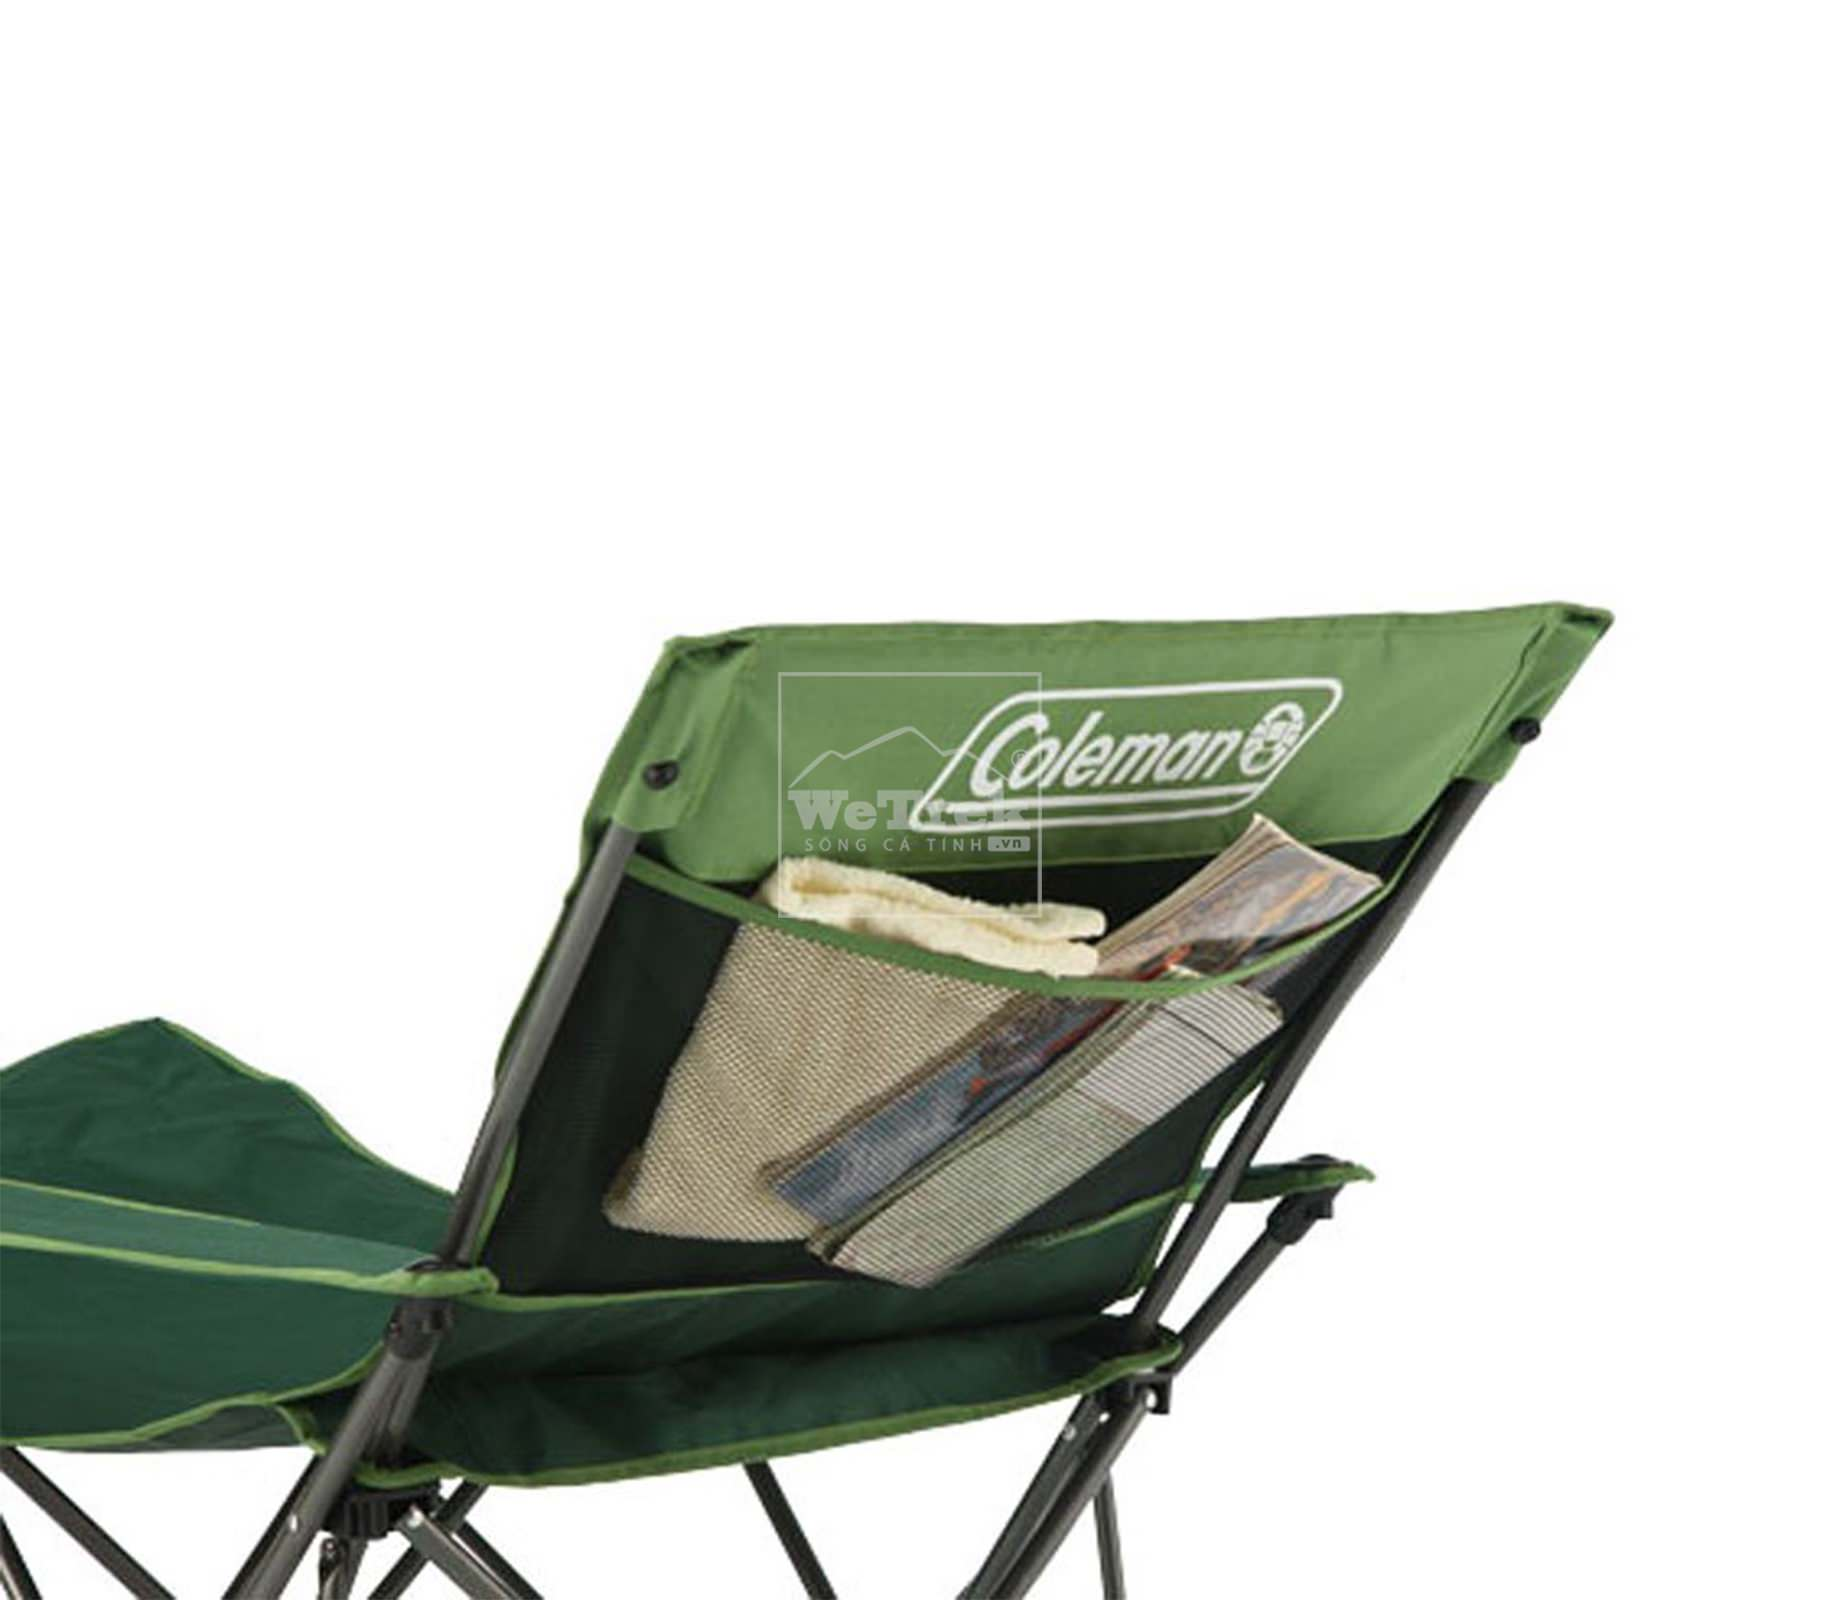 ghe-gap-coleman-easy-lift-chair-steel-green-2000010499-7460-wetrek.vn-1